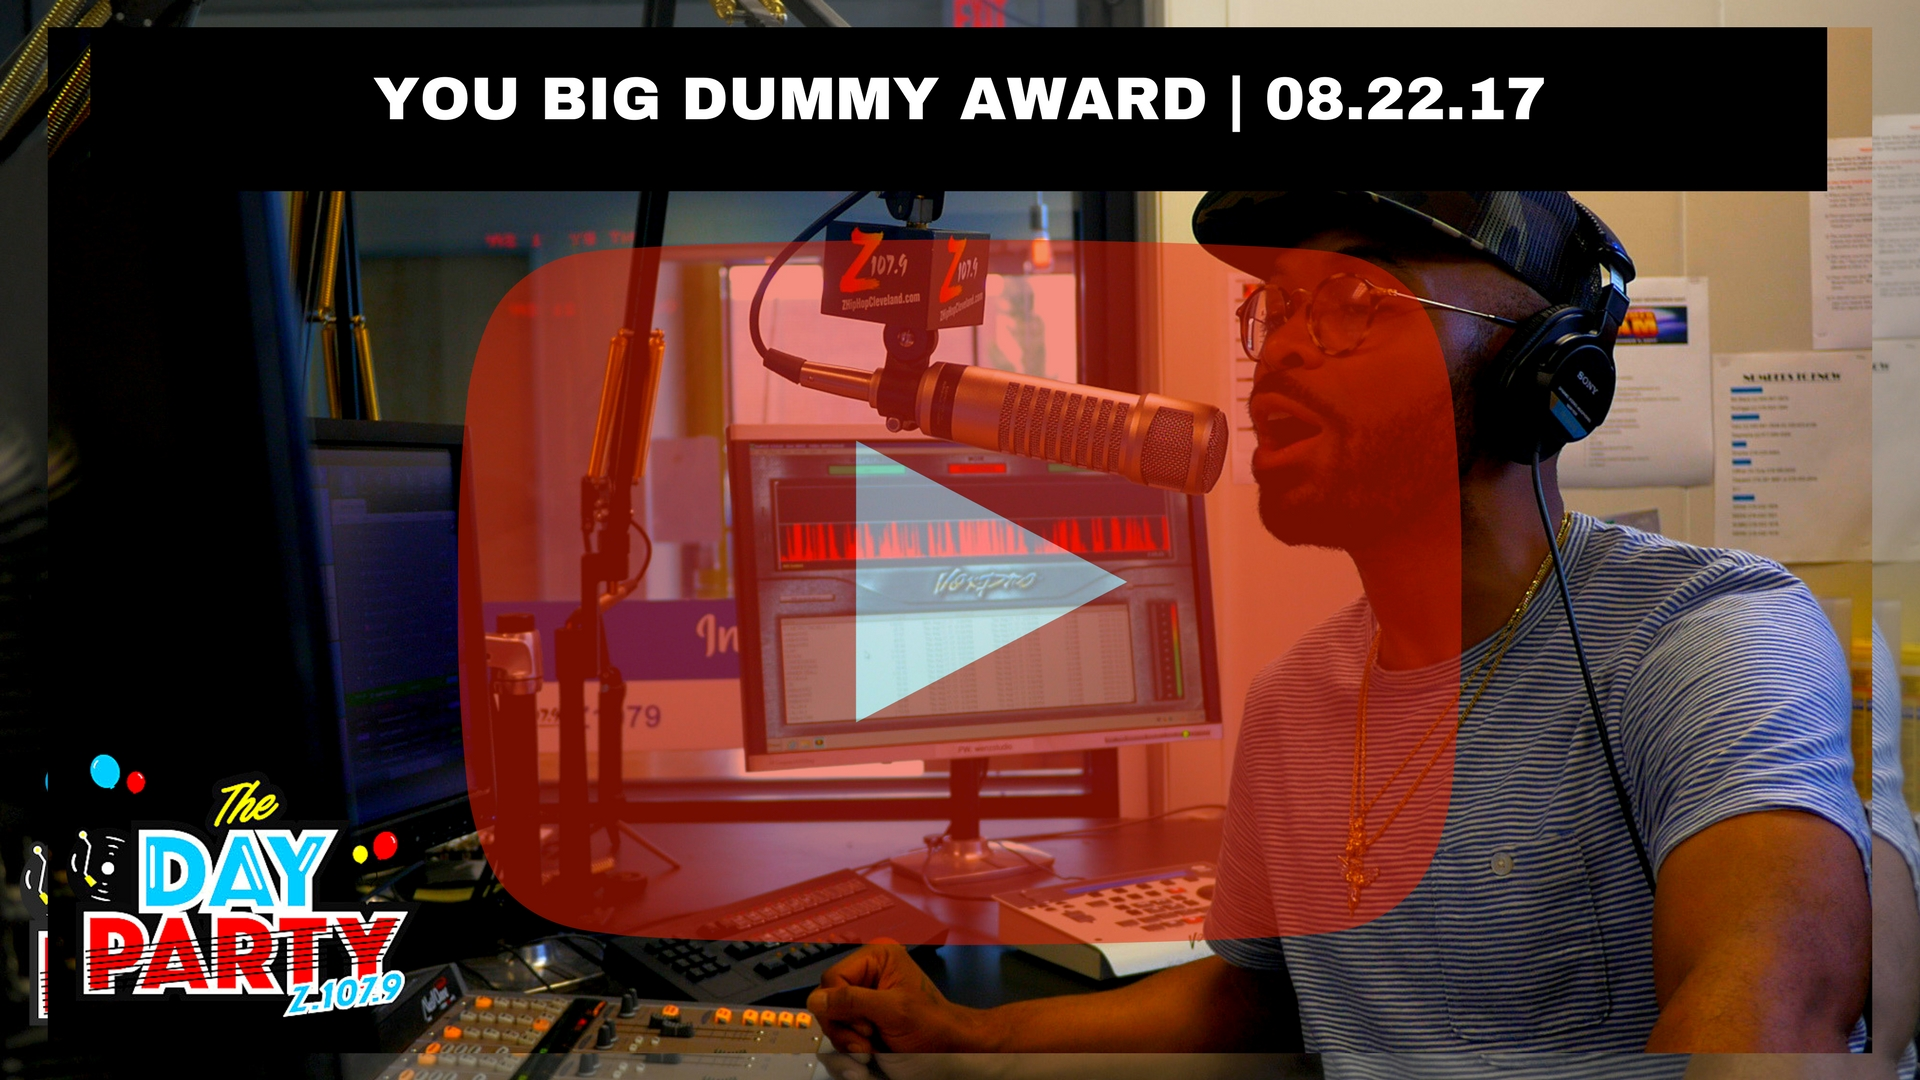 YOU BIG DUMMY AWARD - 08.22.17